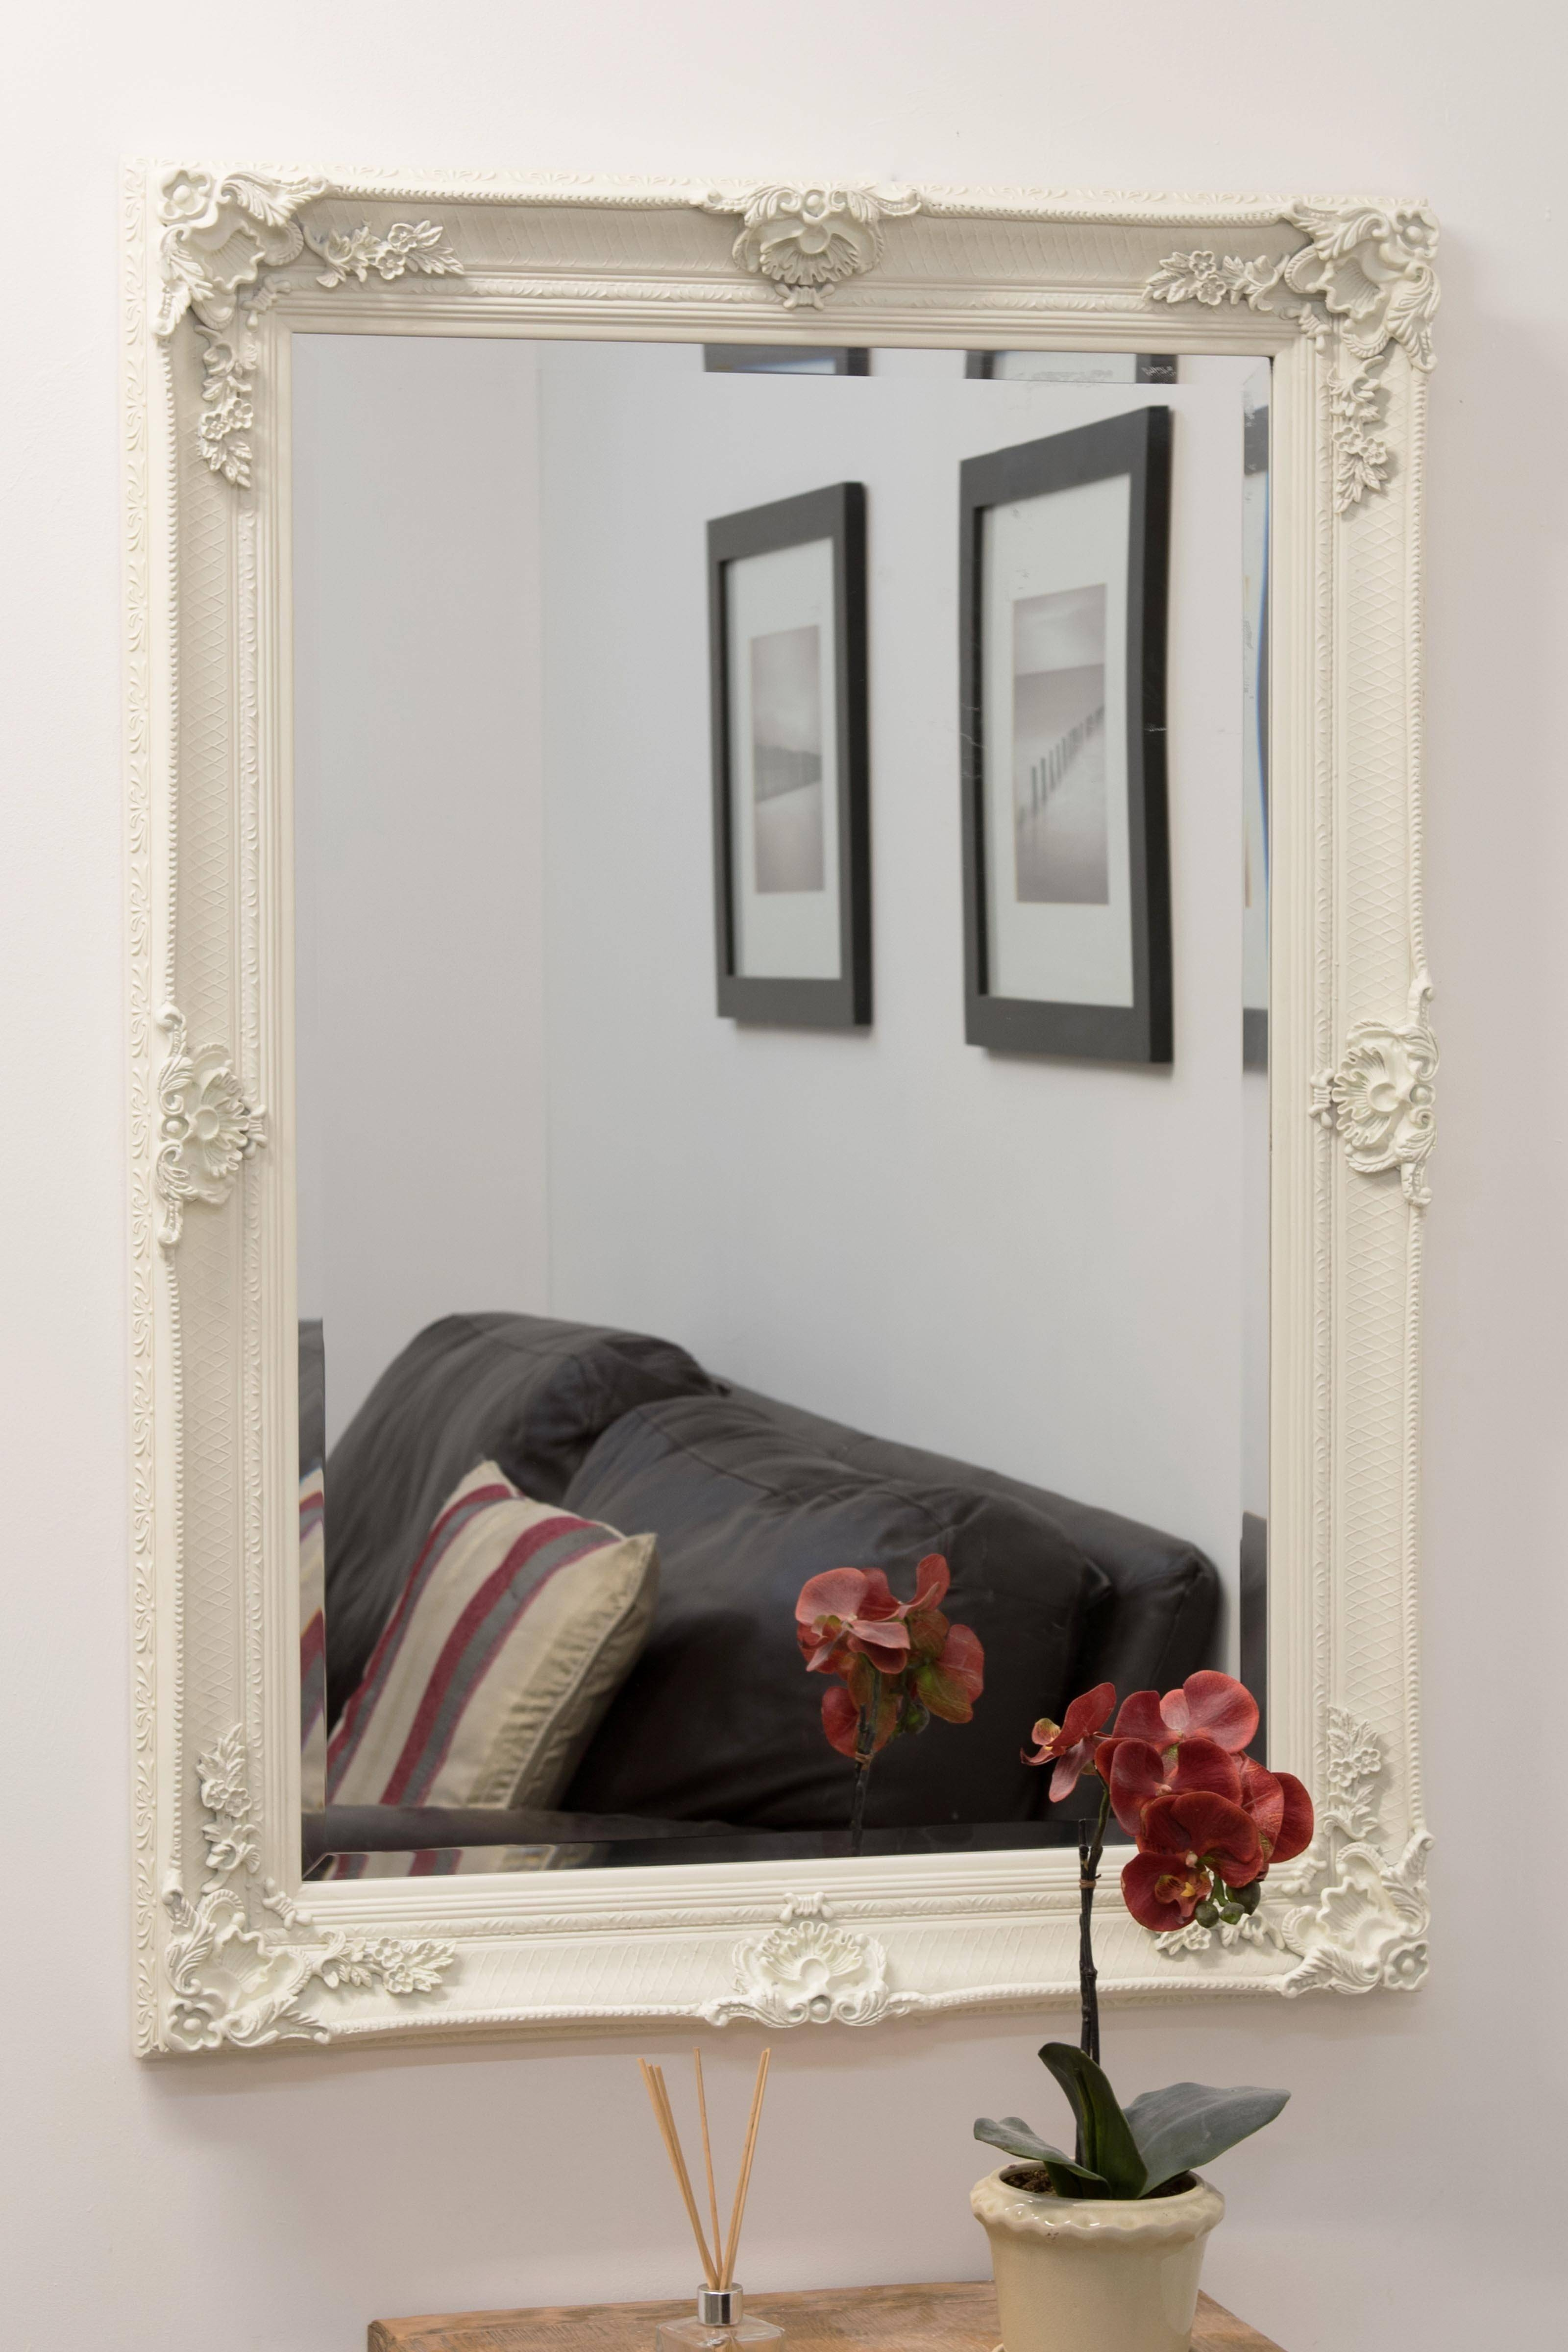 Mirror : Wall Mirrors Images, Full Length Wall Mirrors Decorative Intended For Antique Full Length Wall Mirrors (View 10 of 15)